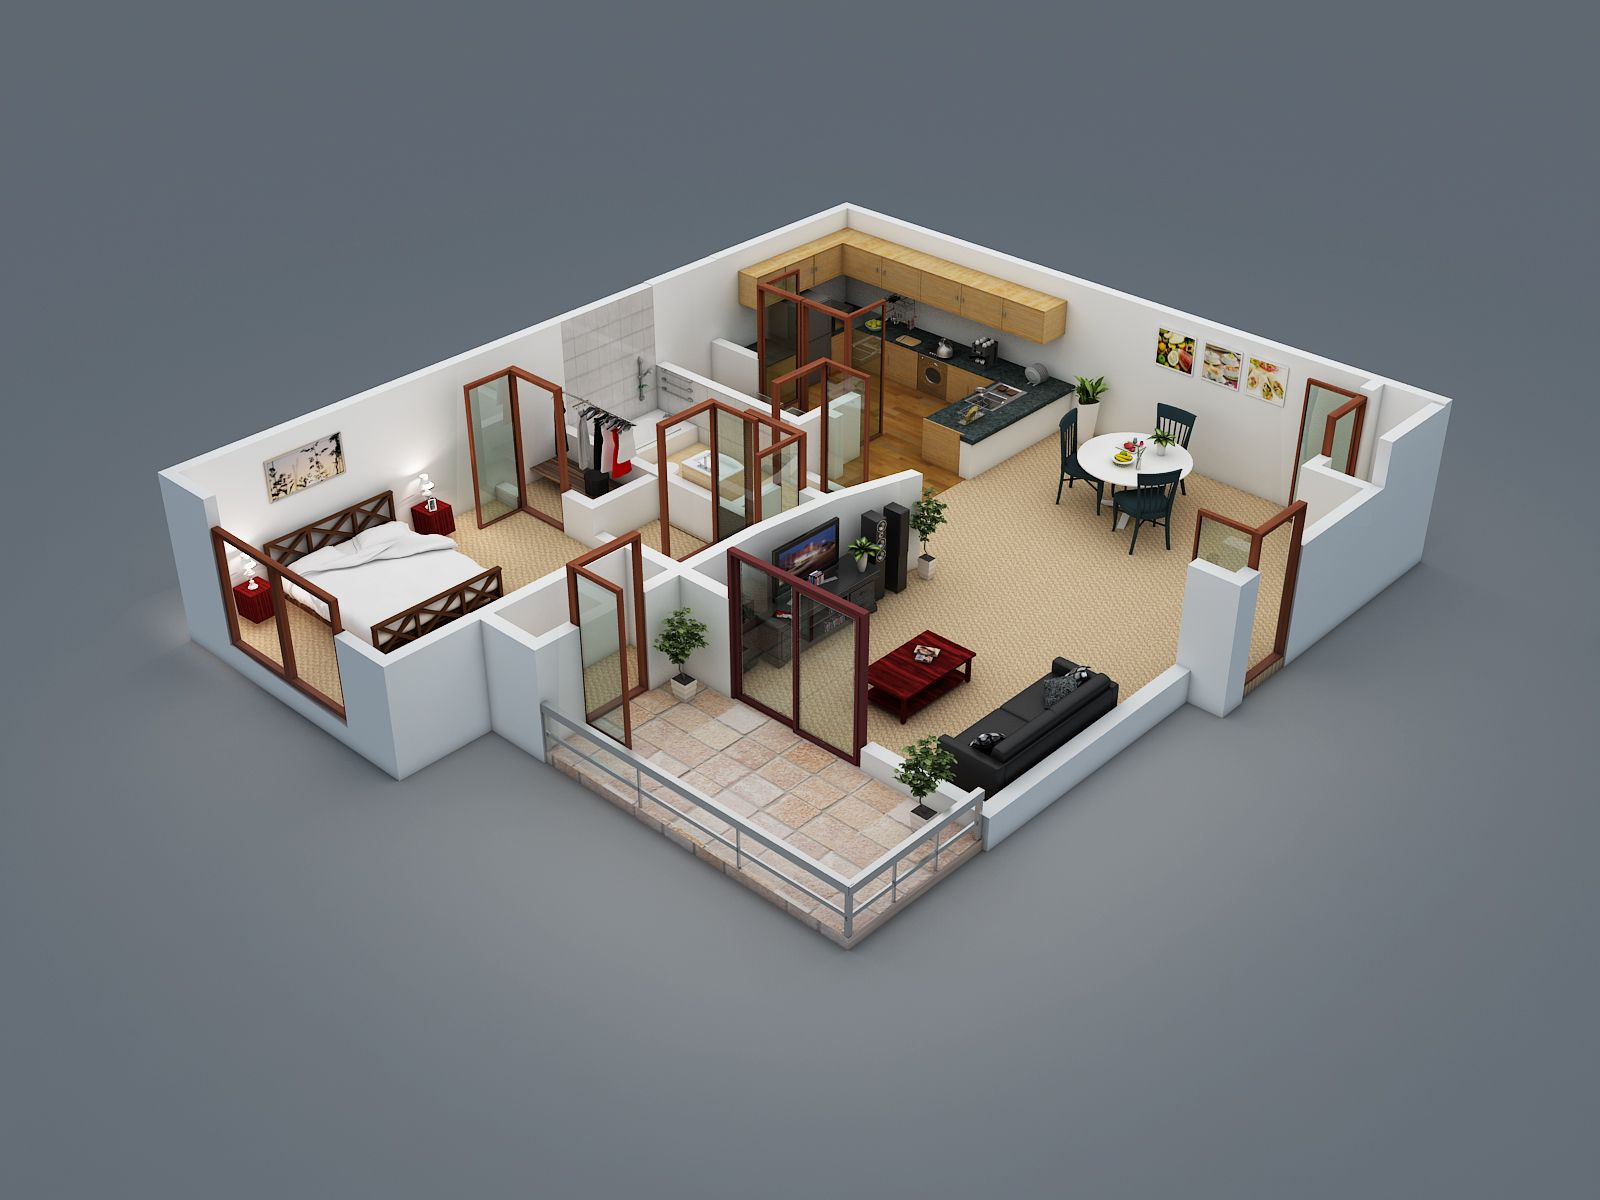 3d floor plans wazo communications apa pinterest for 3d house blueprints